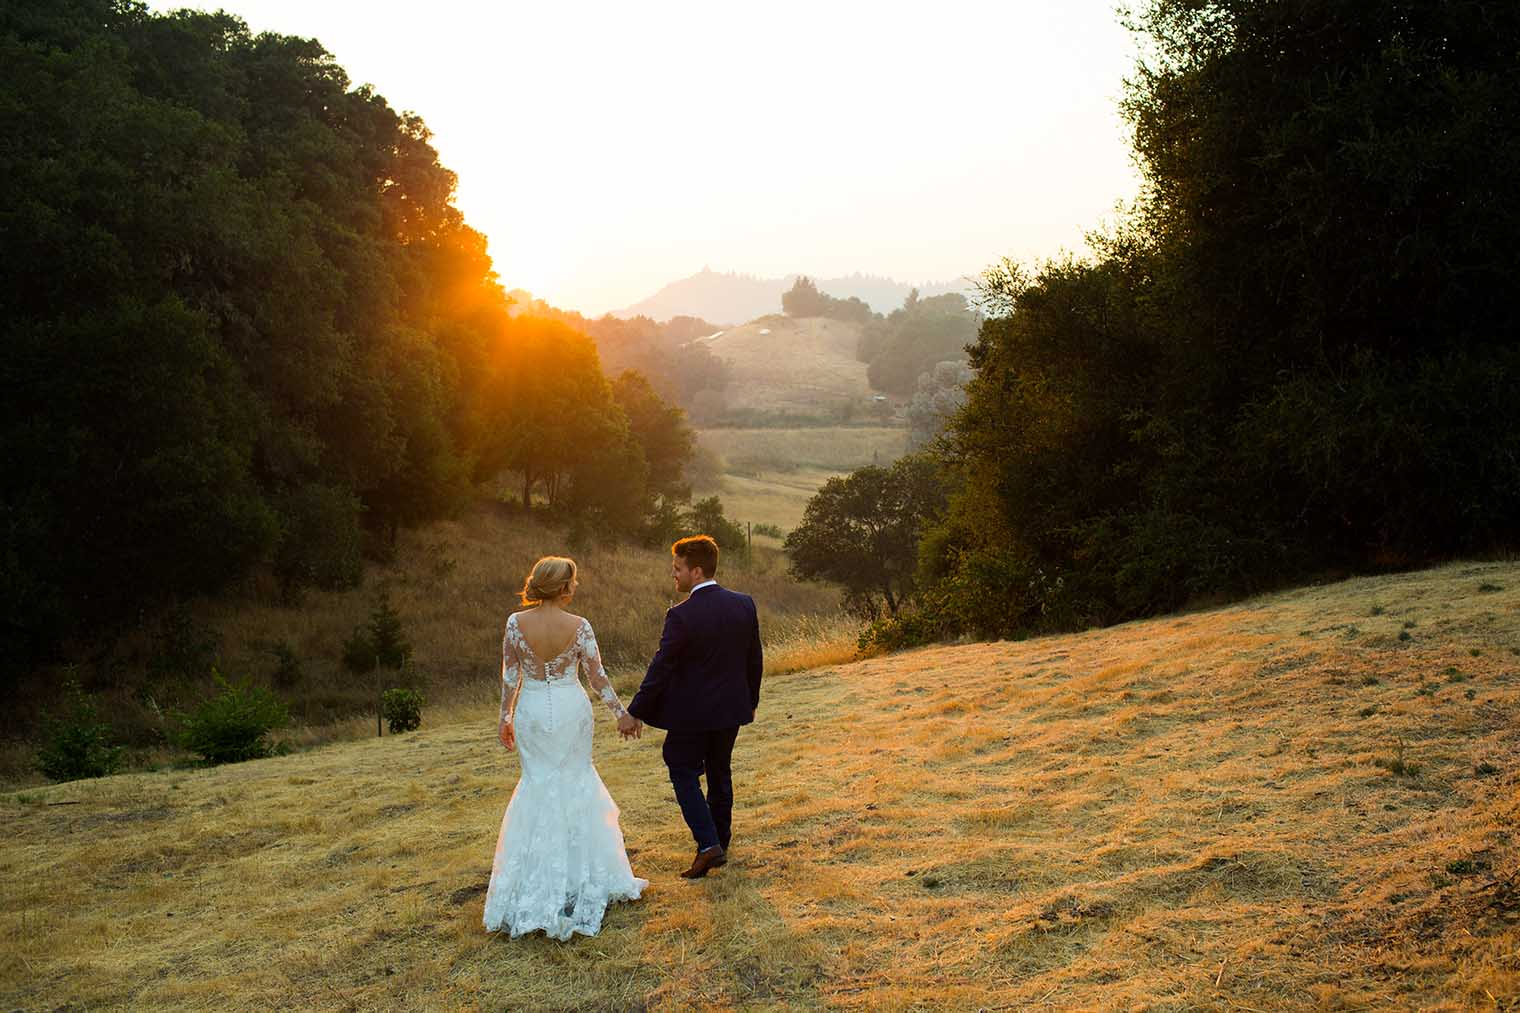 15 Questions To Ask A Wedding Venue Before Booking